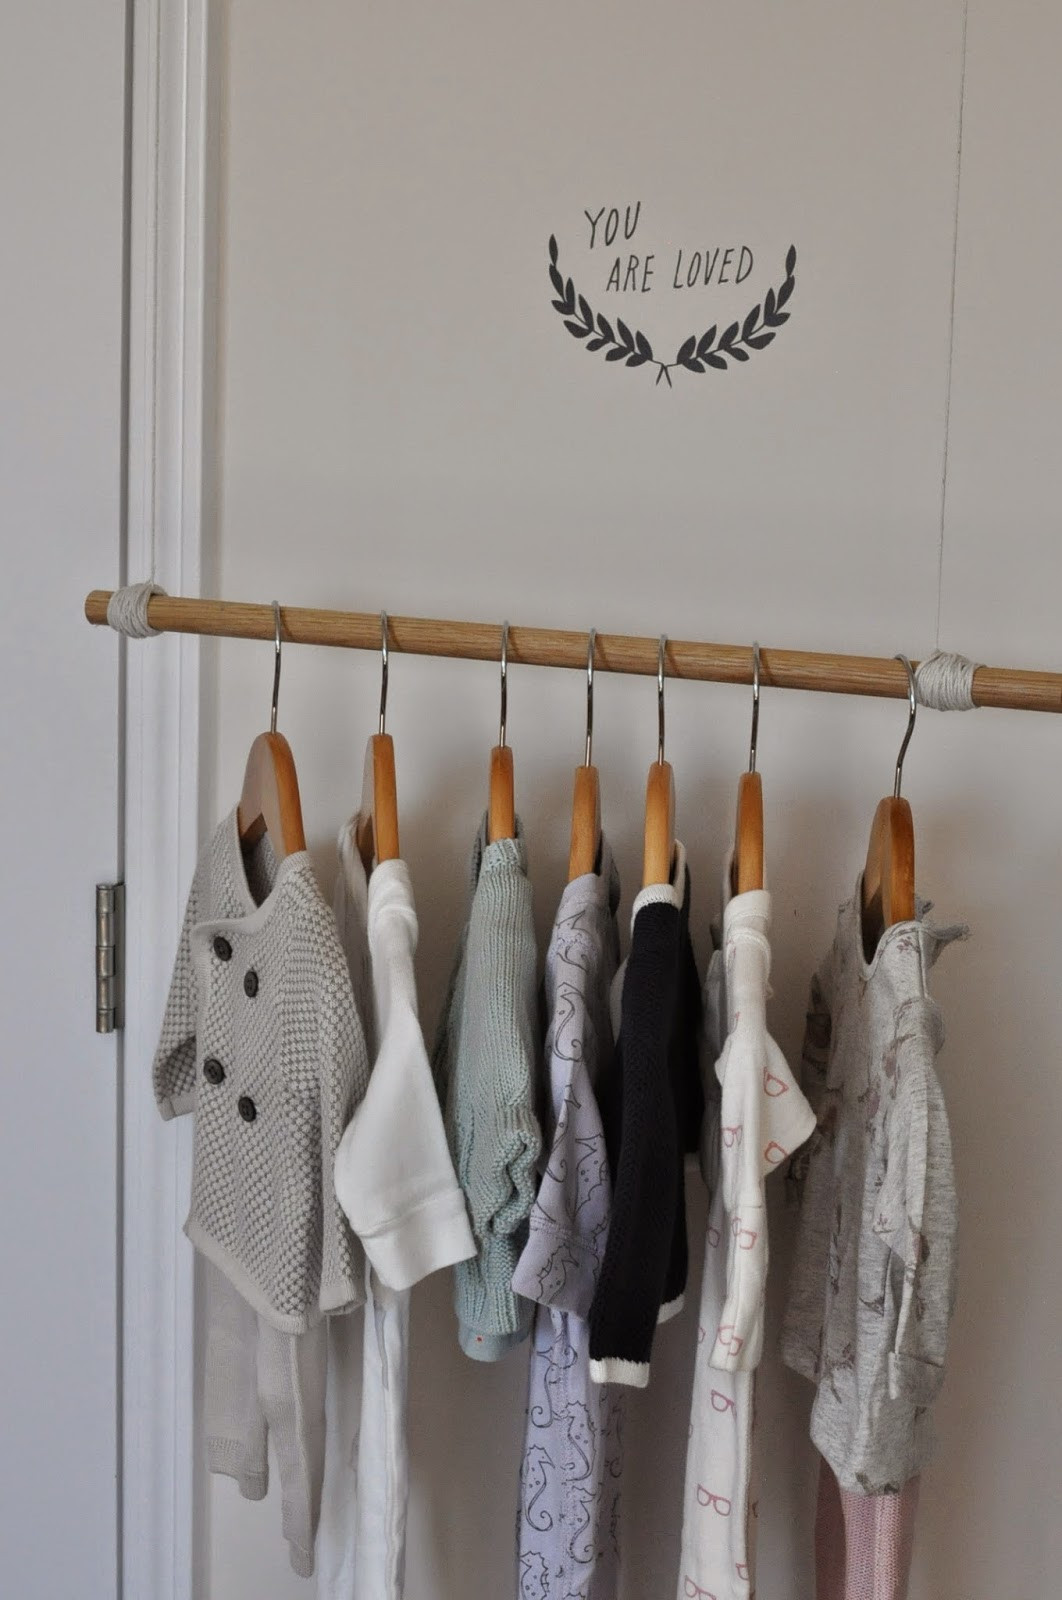 Best ideas about DIY Hanging Clothing Rack . Save or Pin RestlessOasis DIY Clothing Rack Now.